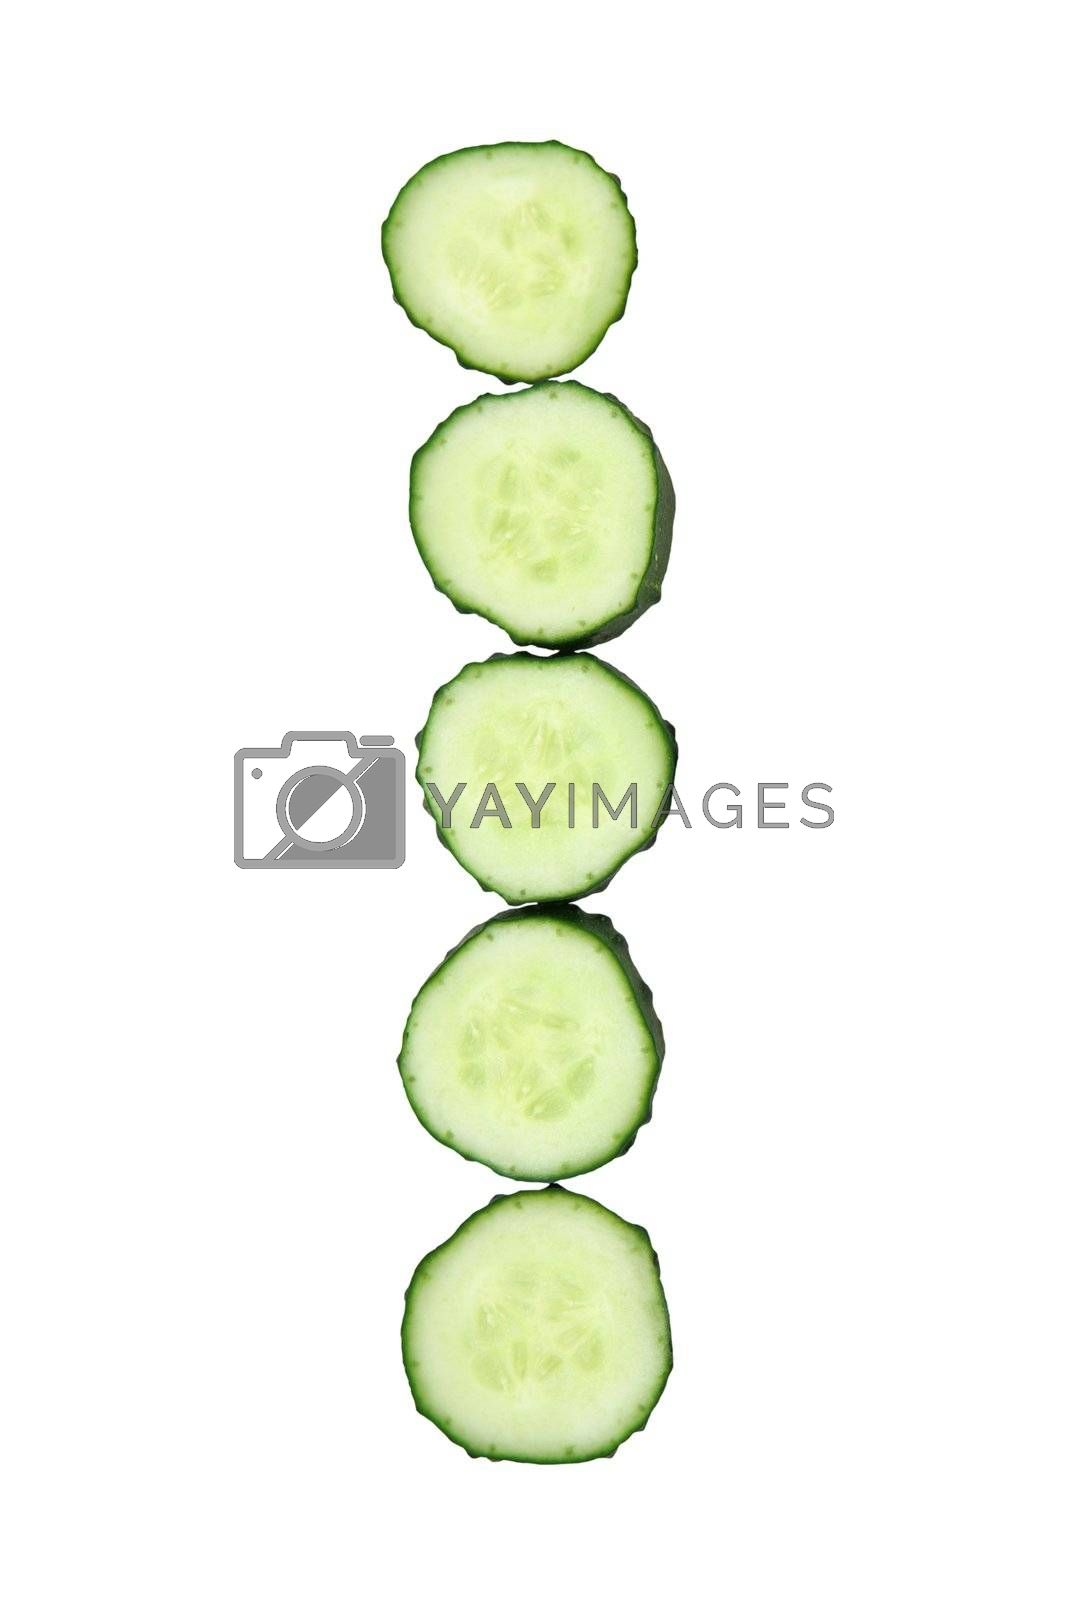 Vegetable Alphabet of chopped cucumber  - letter I